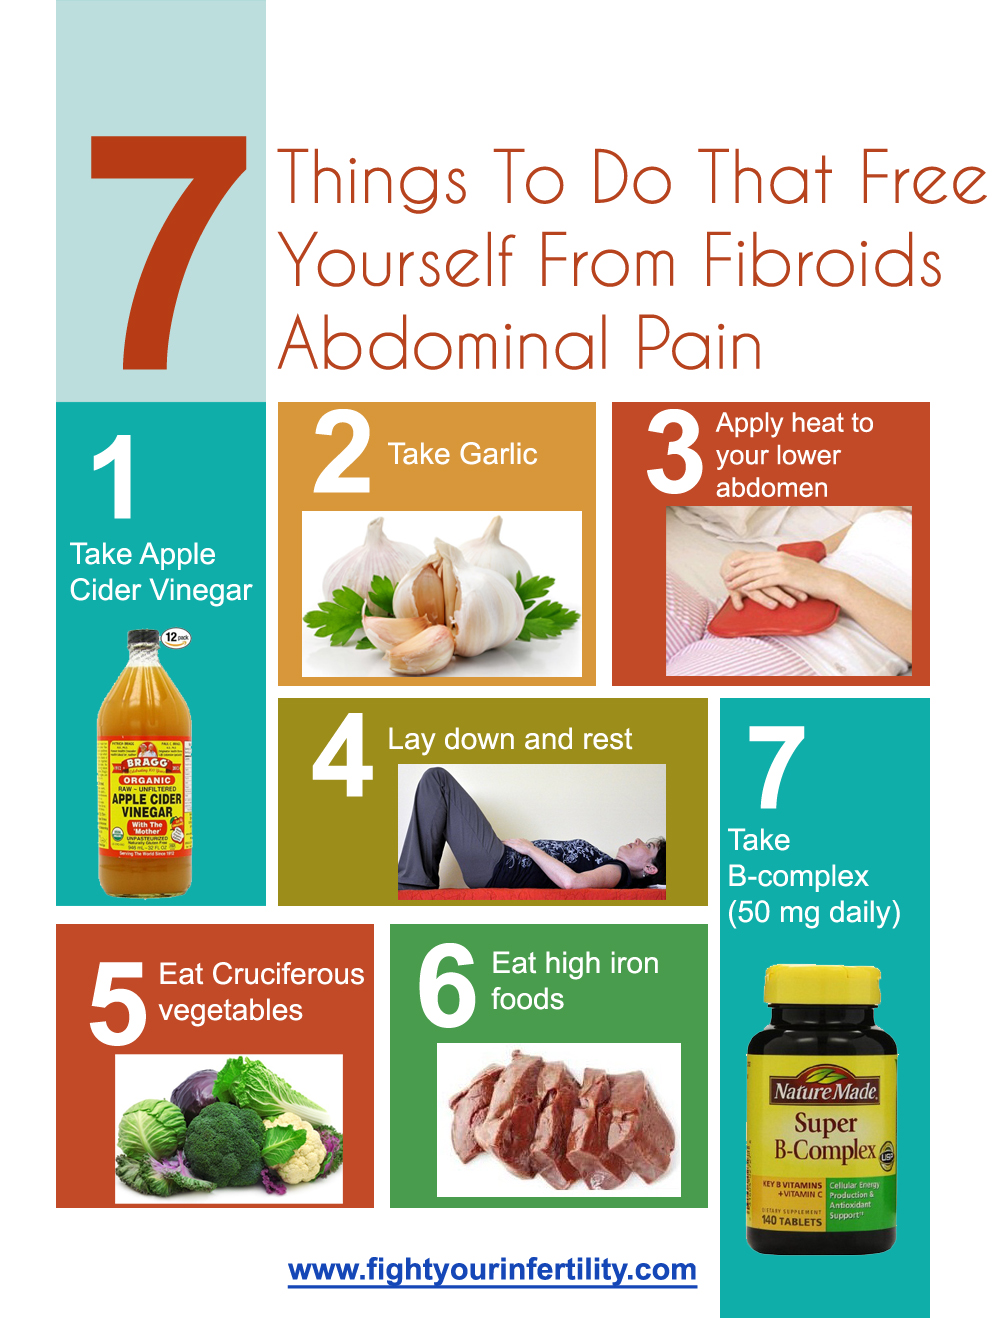 7 Things To Do That Free Yourself From Fibroids Abdominal Pain